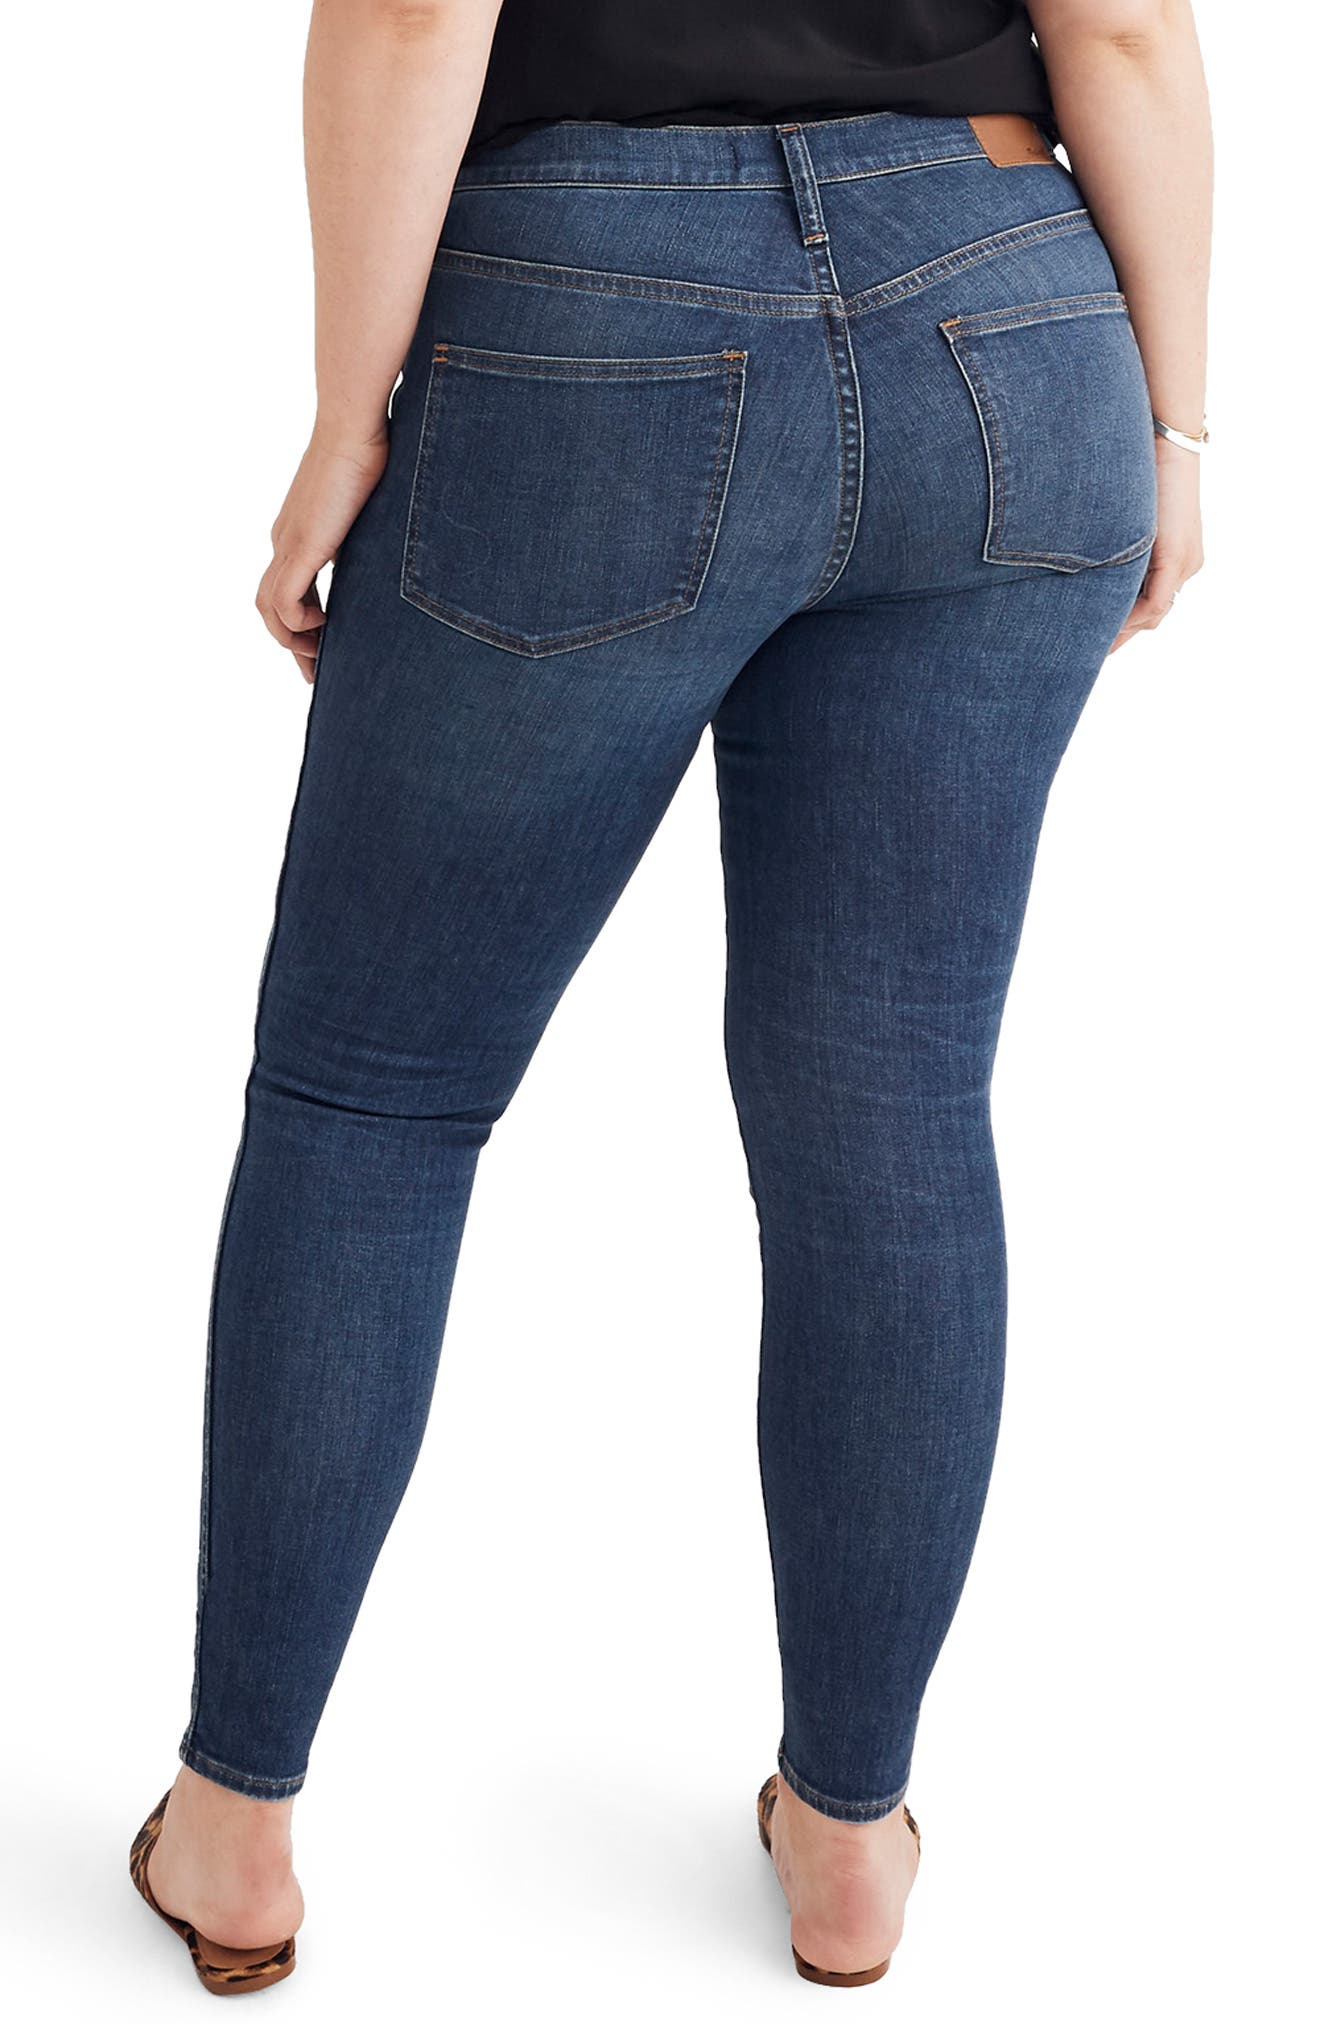 Eco Collection High Rise Skinny Jeans,                             Alternate thumbnail 7, color,                             ELINOR